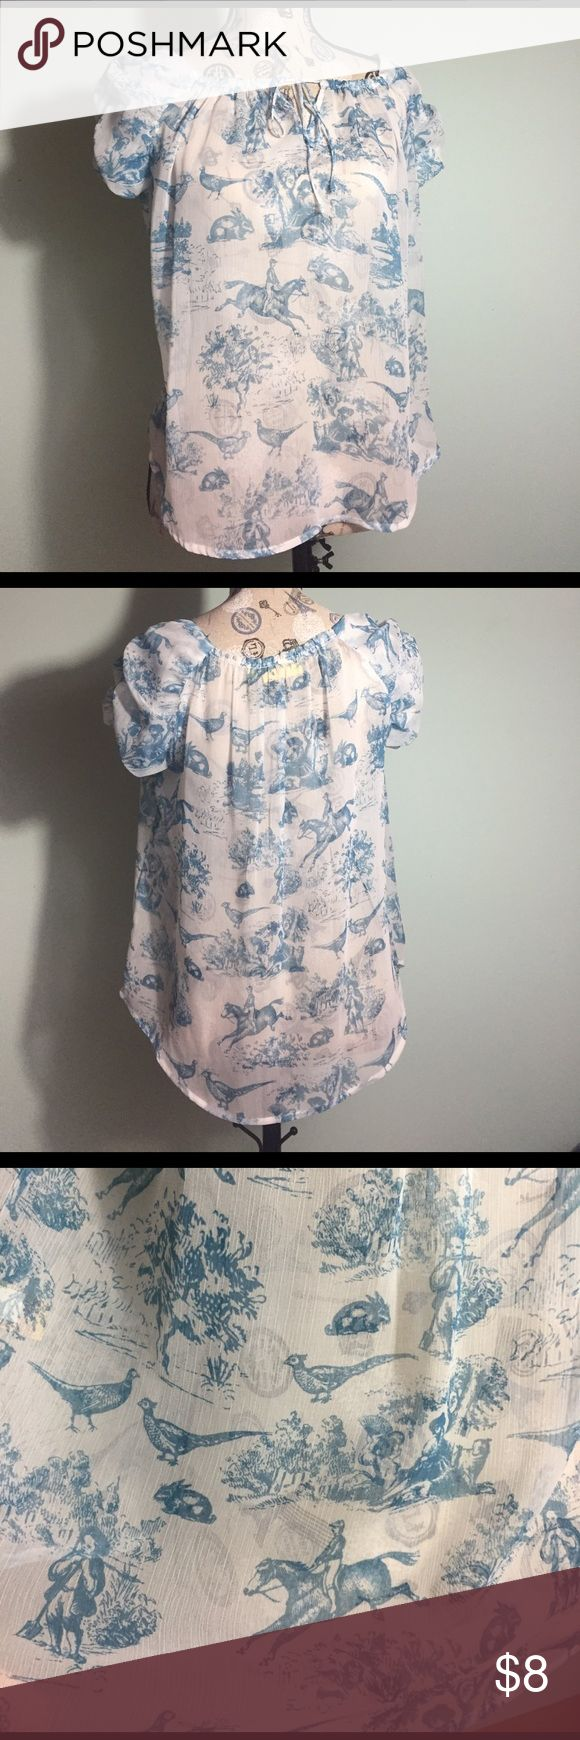 Sheer blue and white blouse Sheer blue and white blouse with a very whimsical pattern Vera Wang Tops Blouses